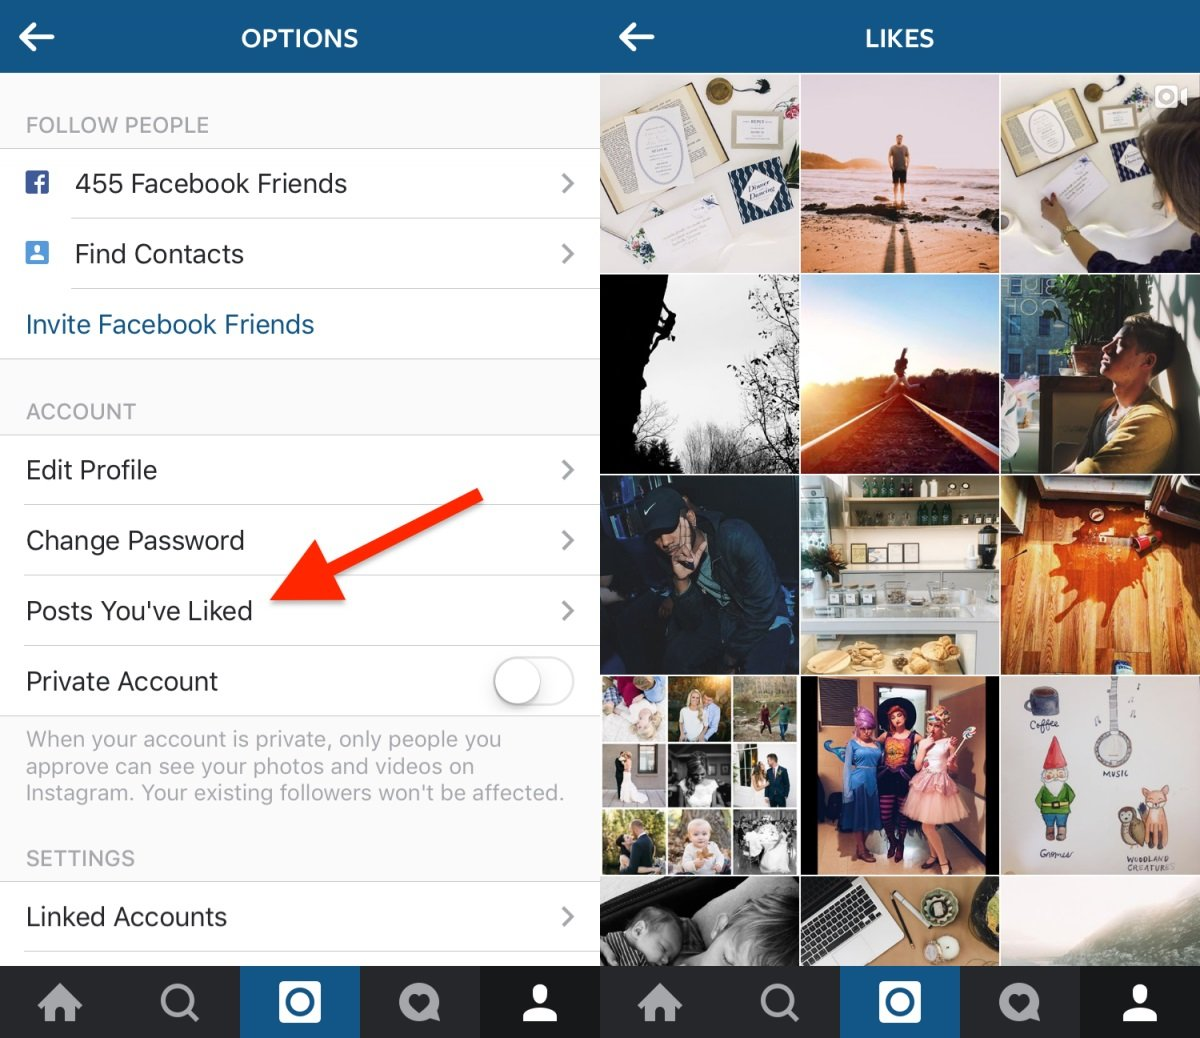 Top 10 Cool Tips And Tricks For Instagram. 8